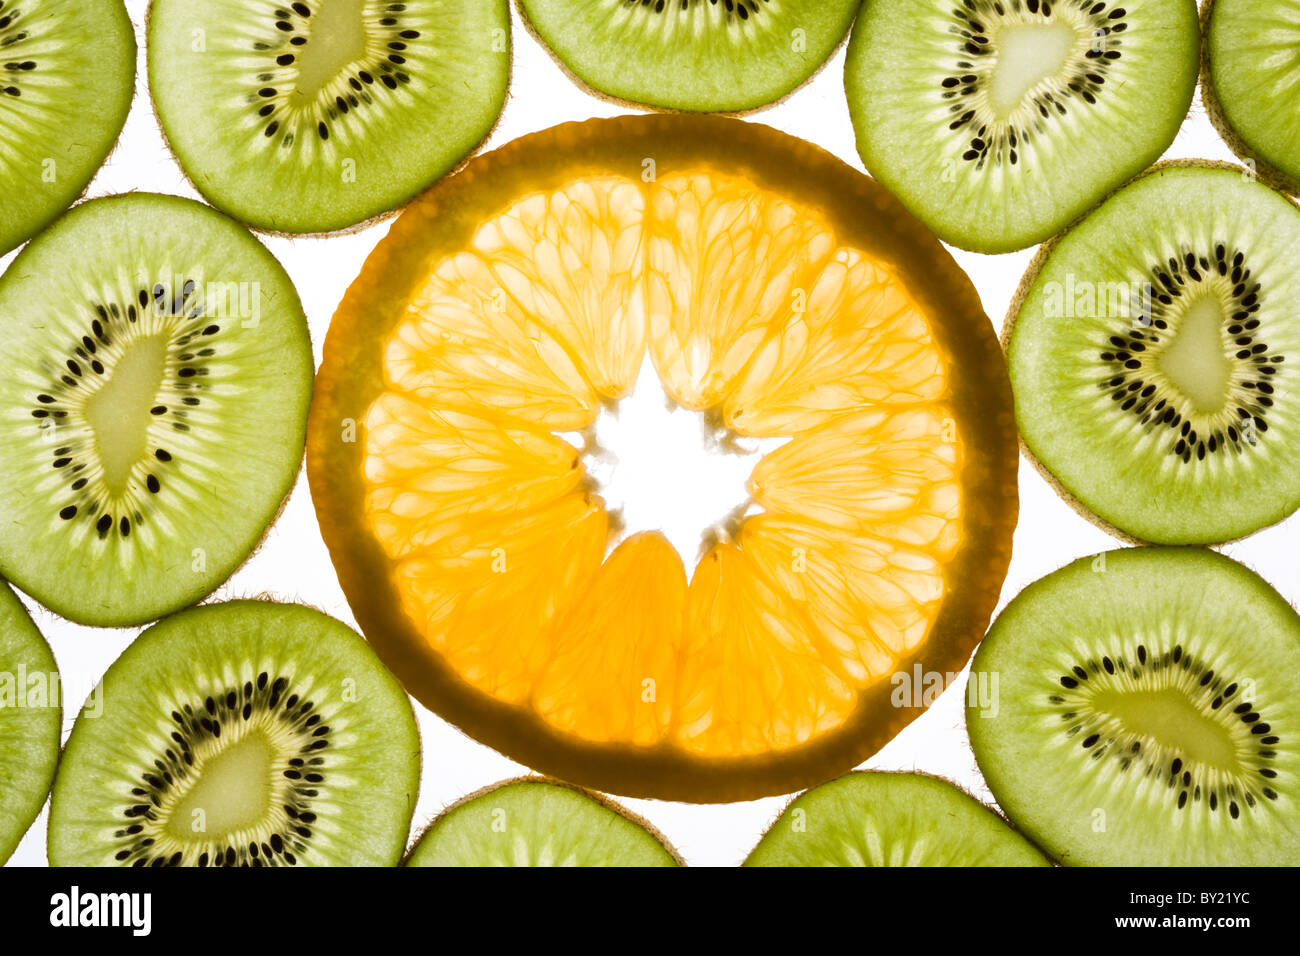 Photo of orange in the middle of slices of kiwi - Stock Image